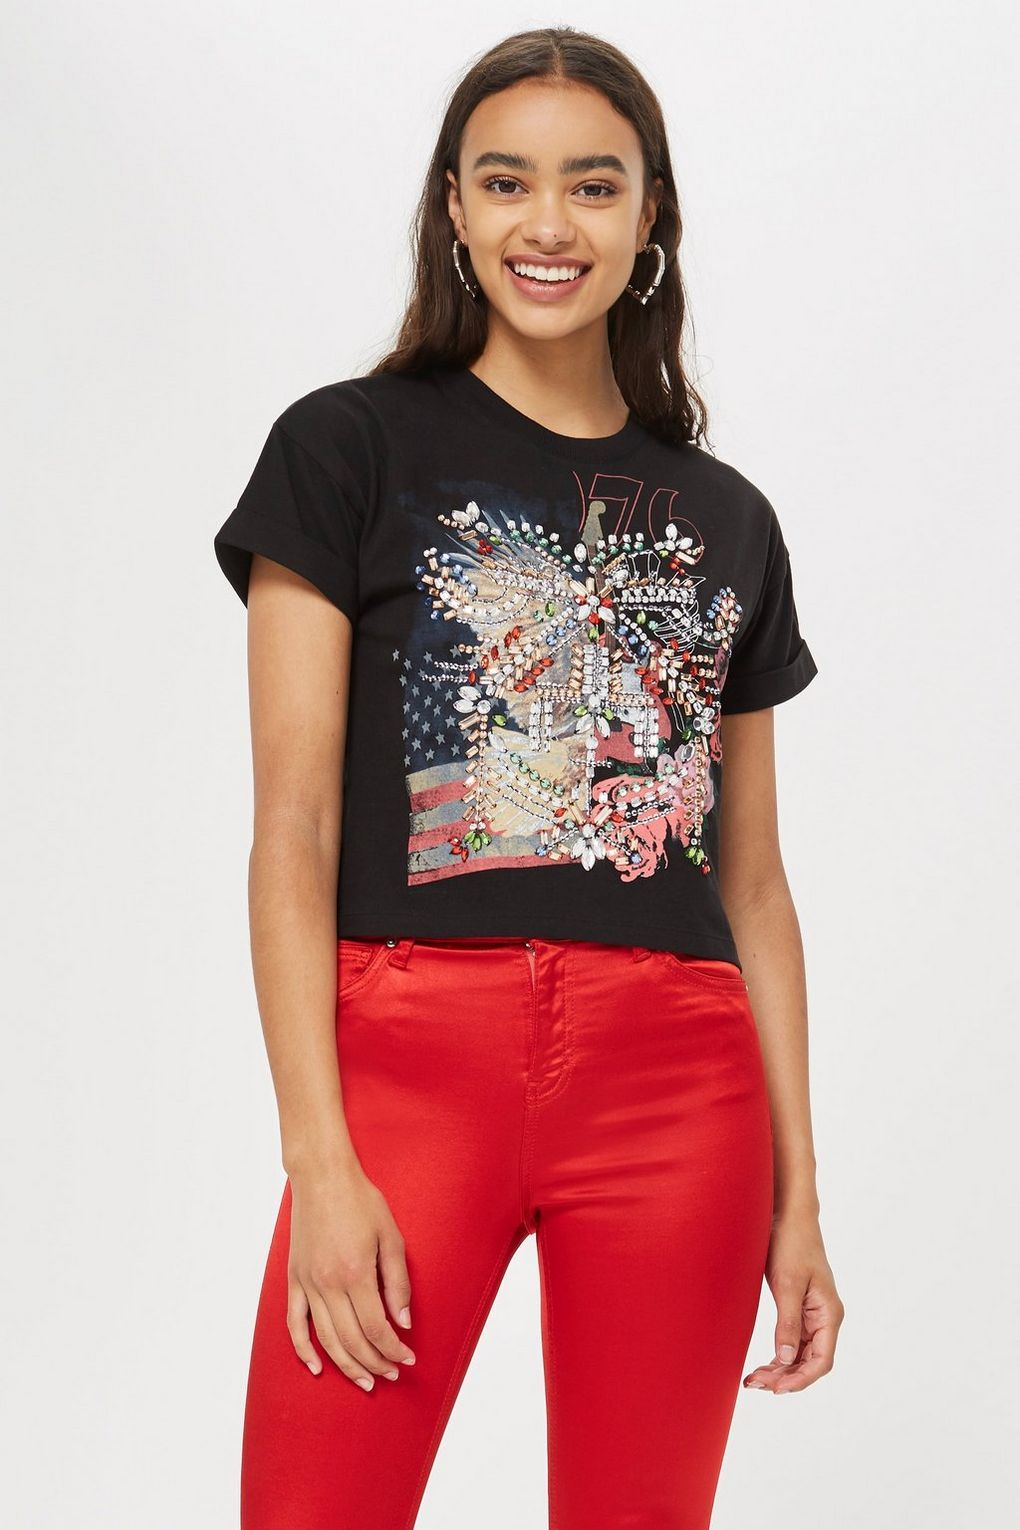 b4371777 Embellished Rock T-Shirt | Party in the USA | Rock t shirts, Shirt ...